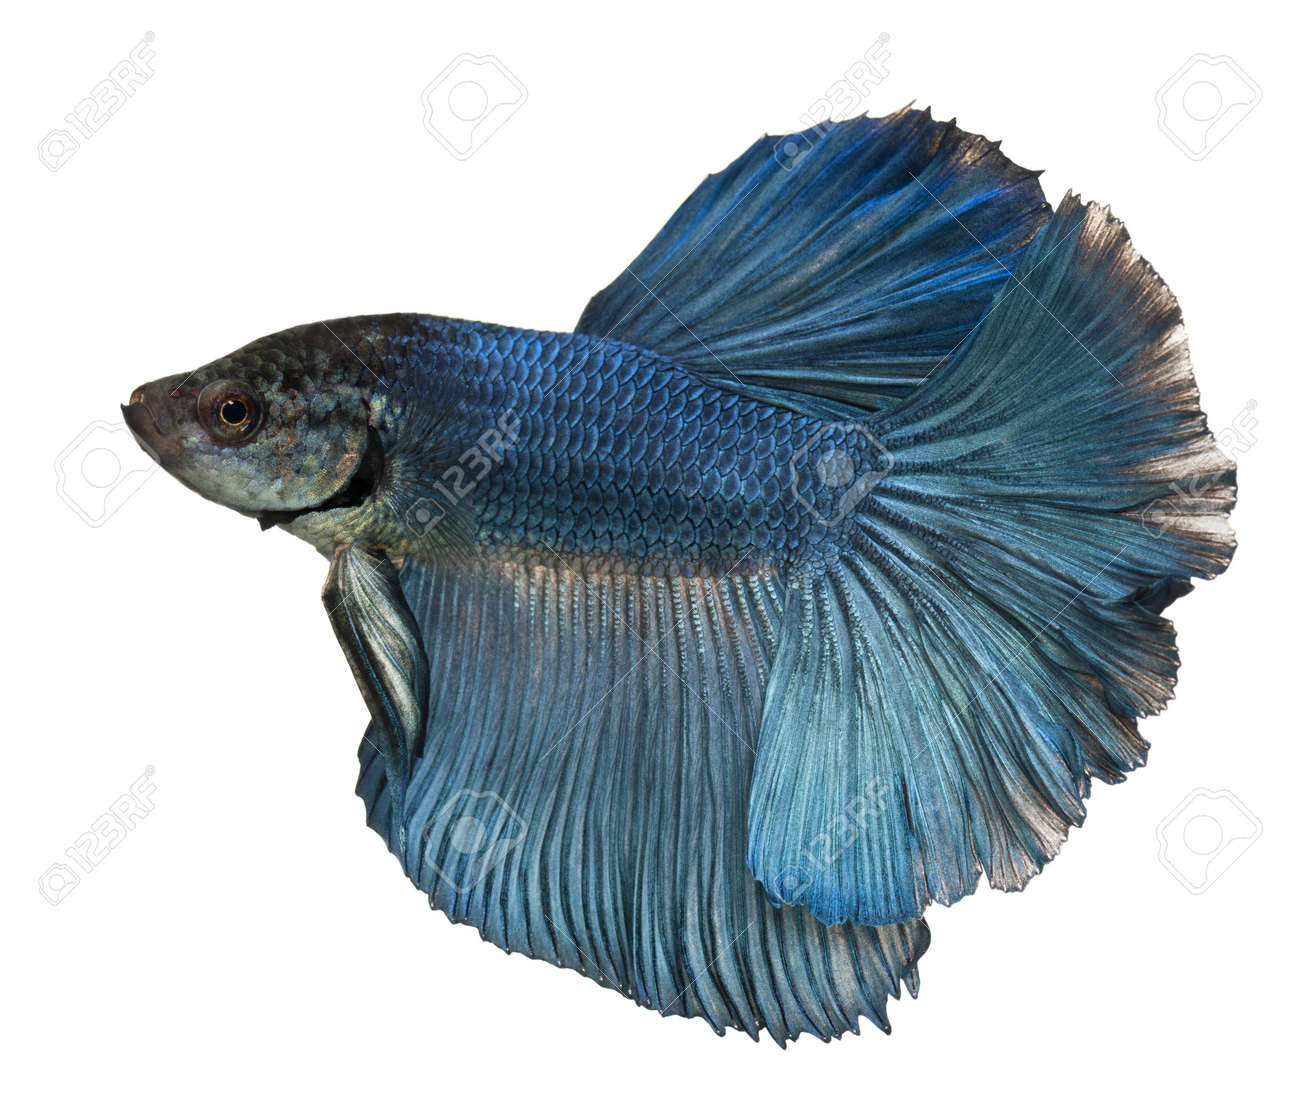 Siamese Betta Fish | Blue Siamese Fighting Fish Betta Splendens Swimming In Front